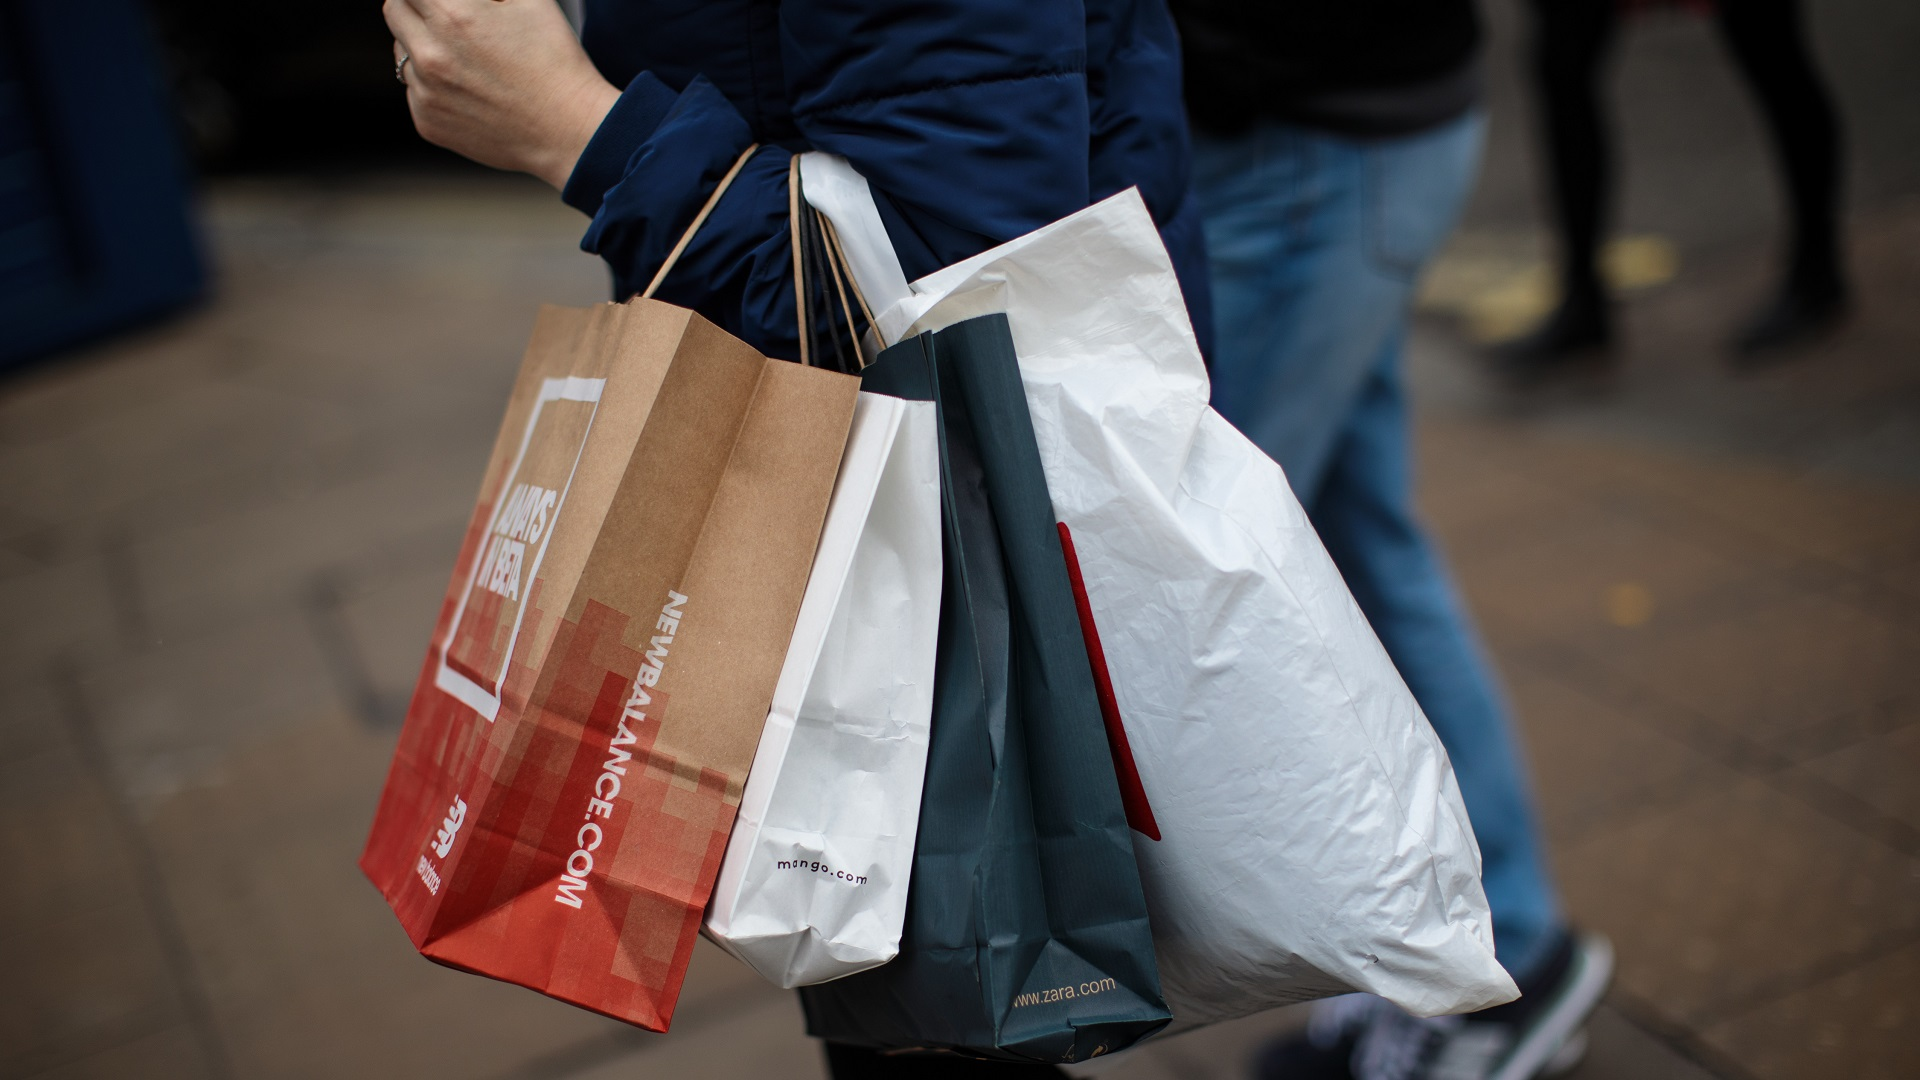 BLACK FRIDAY SHOPPING BAGS-846652698